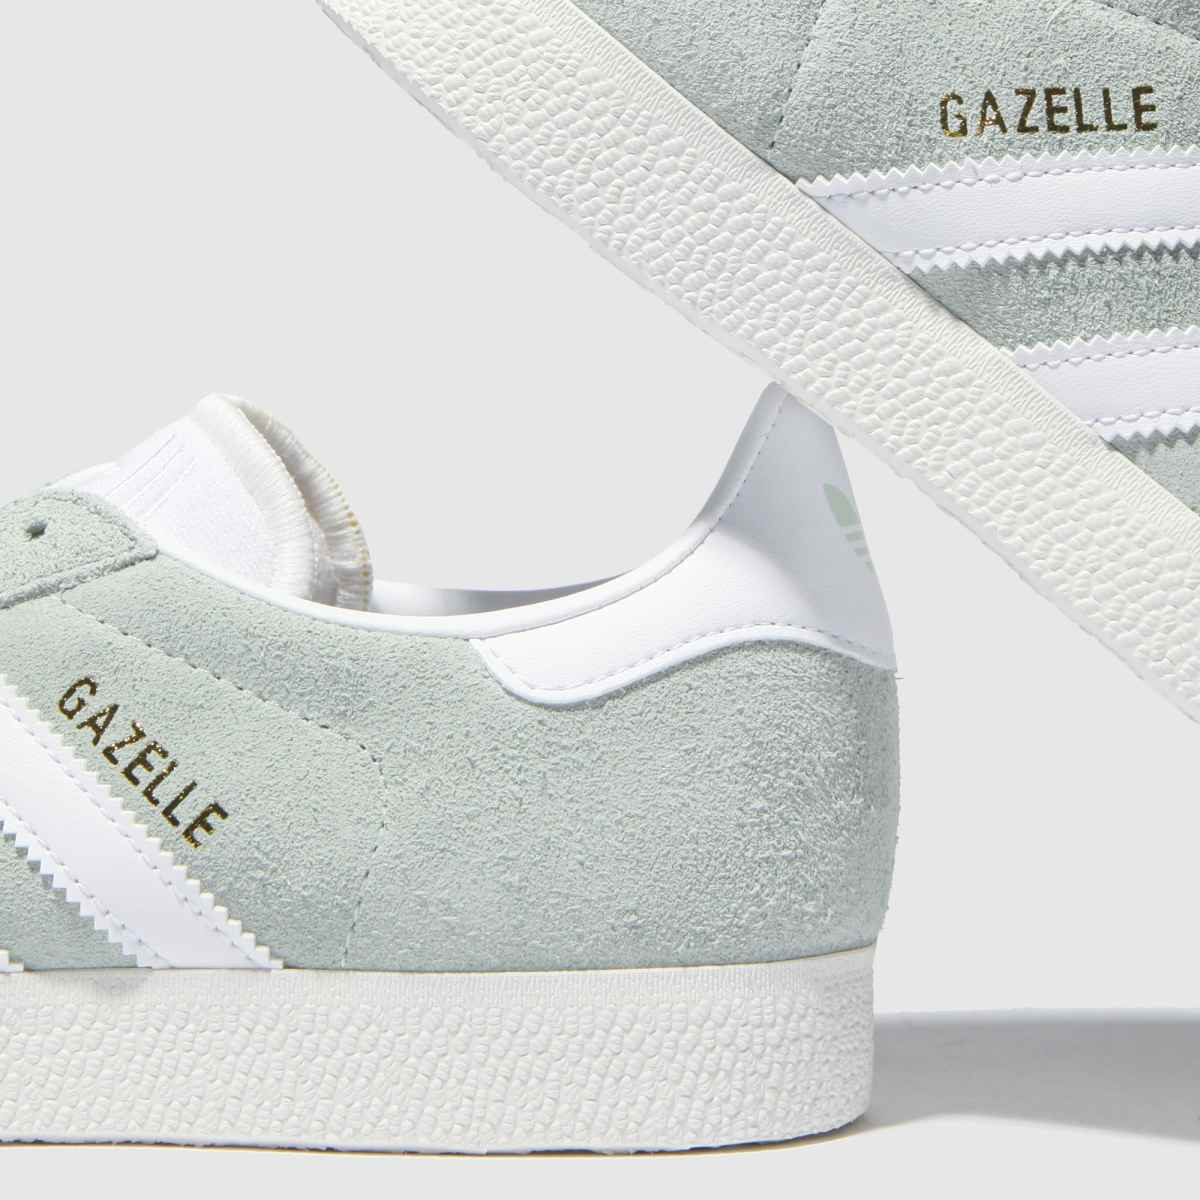 Large selection of men's, women's and kids Gazelle in the sale - 20 different colourways now reduced including the adidas Gazelle in Vapour green pictured here now reduced to £40.  View the sale here >> https://bit.ly/2DdRjMX